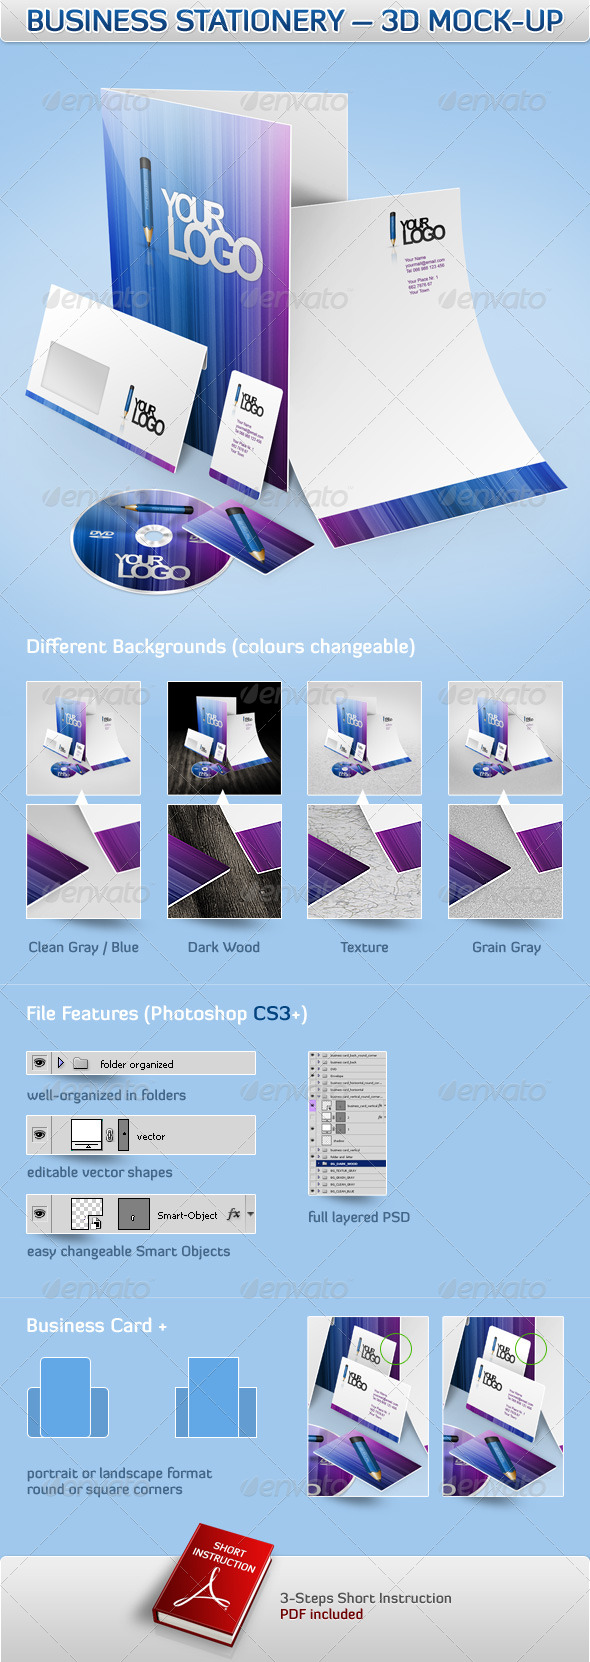 Business Stationery 3D Mock-Up